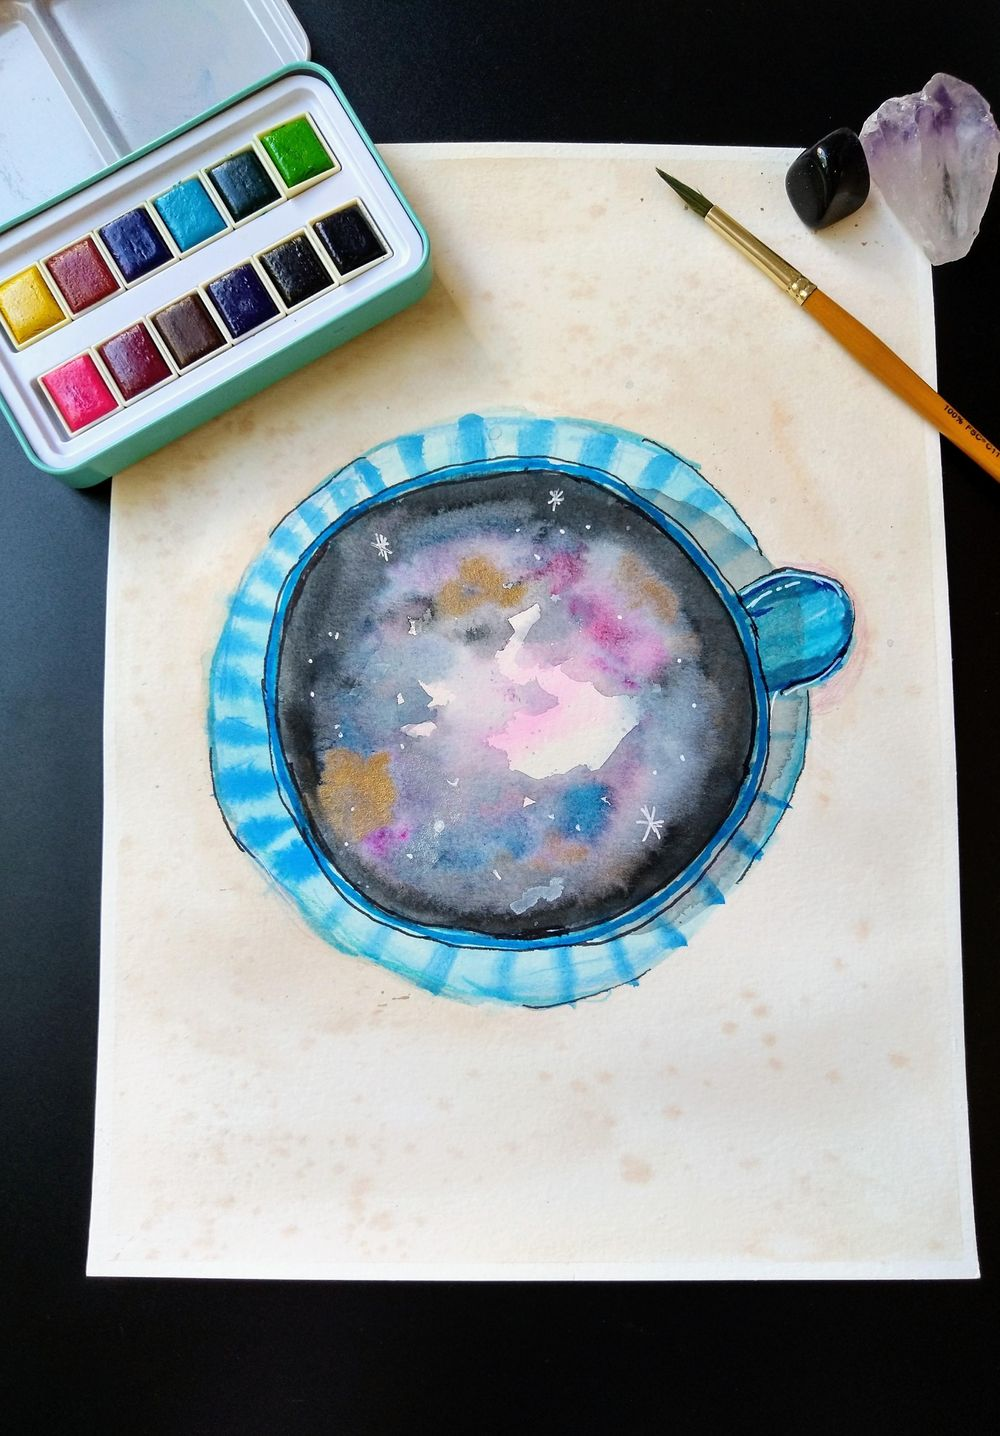 Galaxy Drinks Illustration with Watercolor & Mixed Media - image 1 - student project